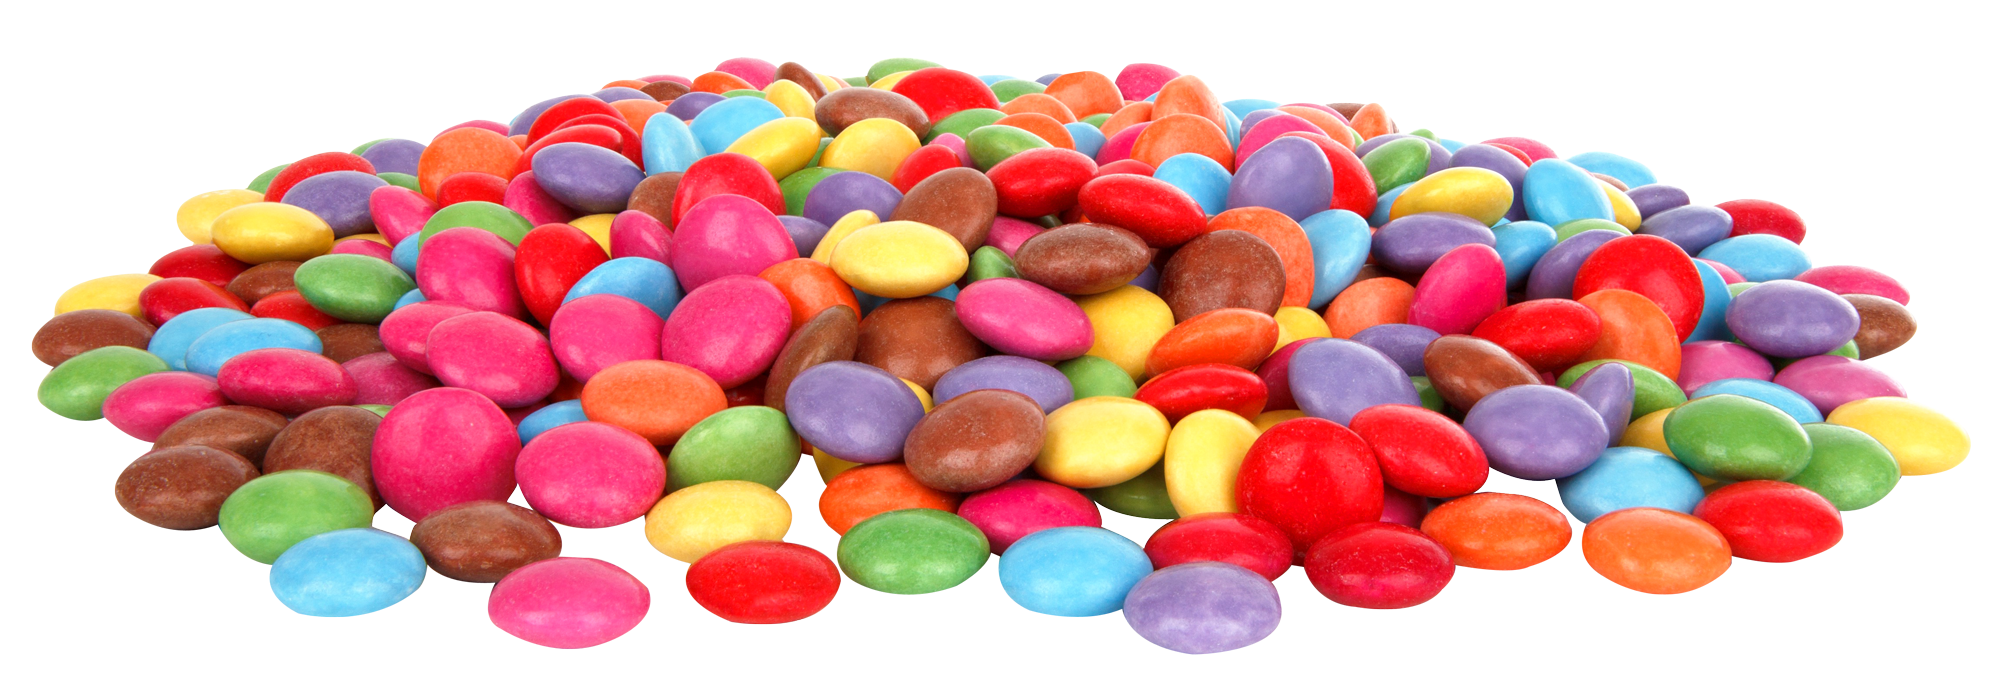 Candy transparent png. Button image purepng free